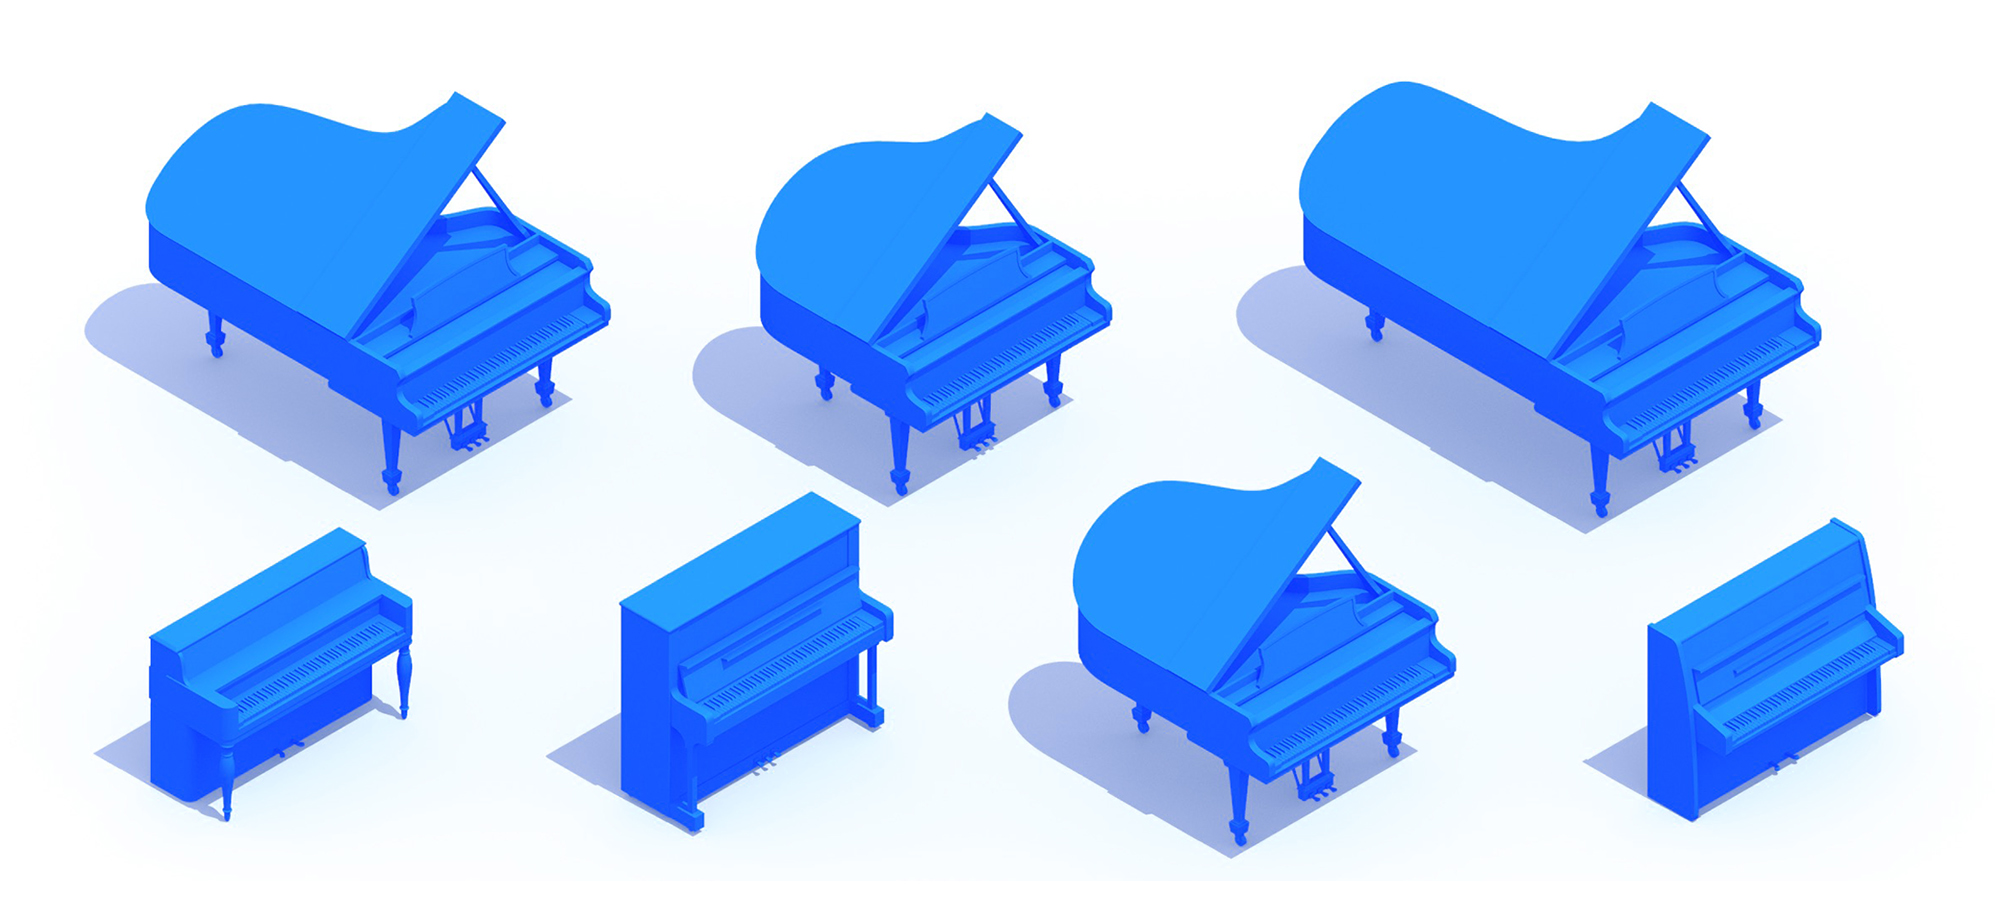 3D perspective of a collection of Pianos showing many different sizes, styles, and designs